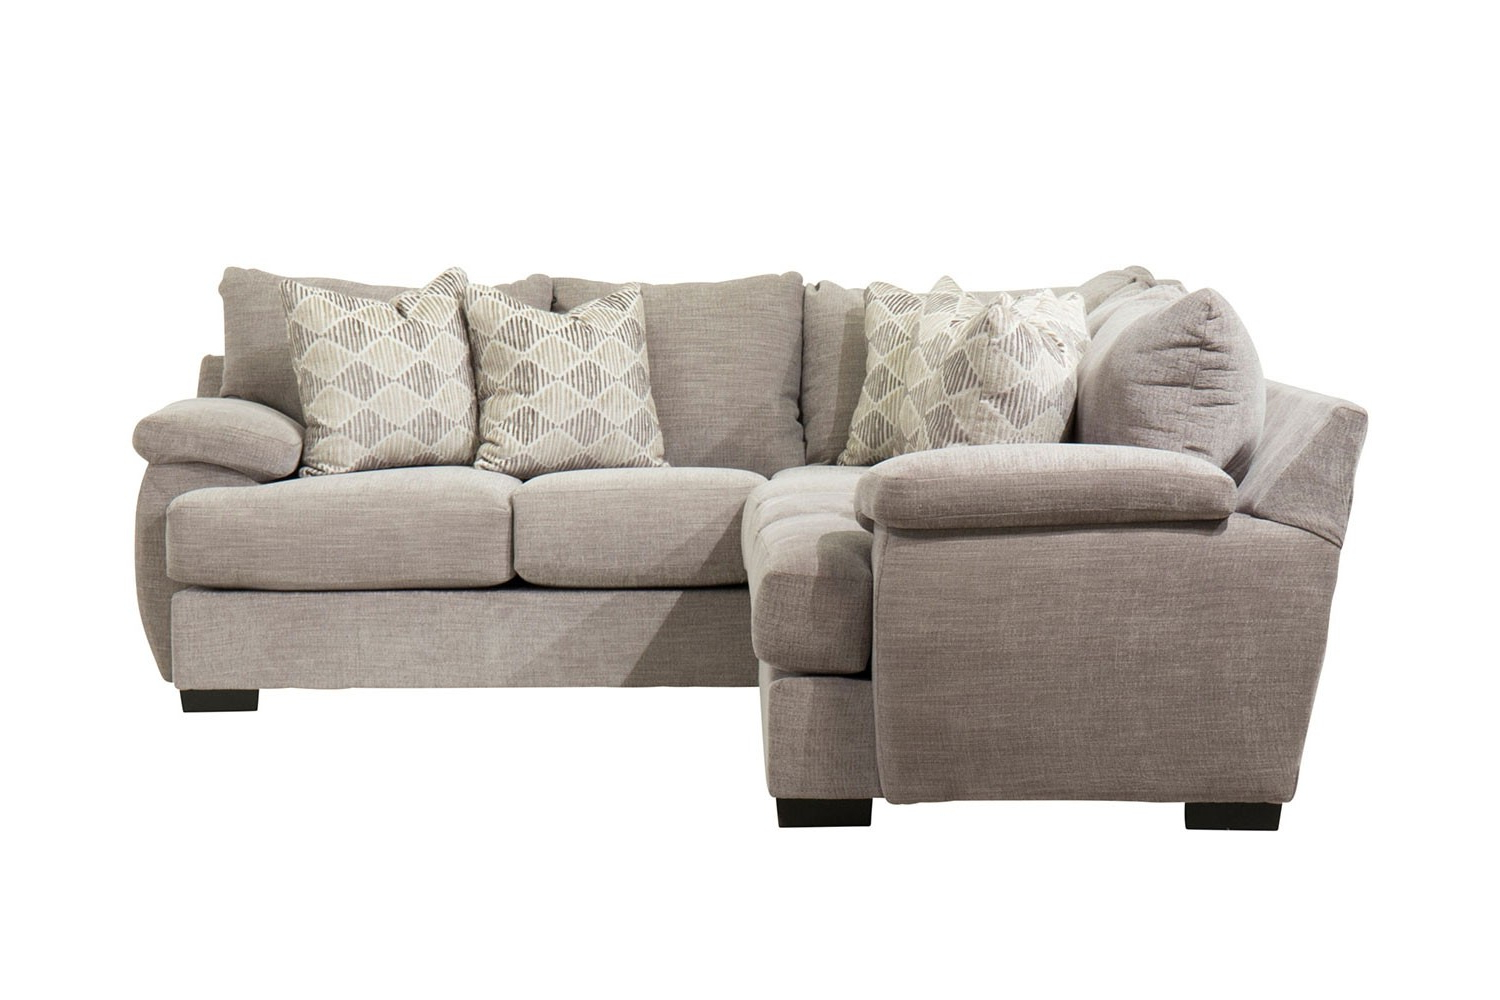 Most Recent Monet Right Facing Sectional Sofas Within Bermuda Down Right Facing Tux Sofa Sectional In Smoke (View 20 of 25)